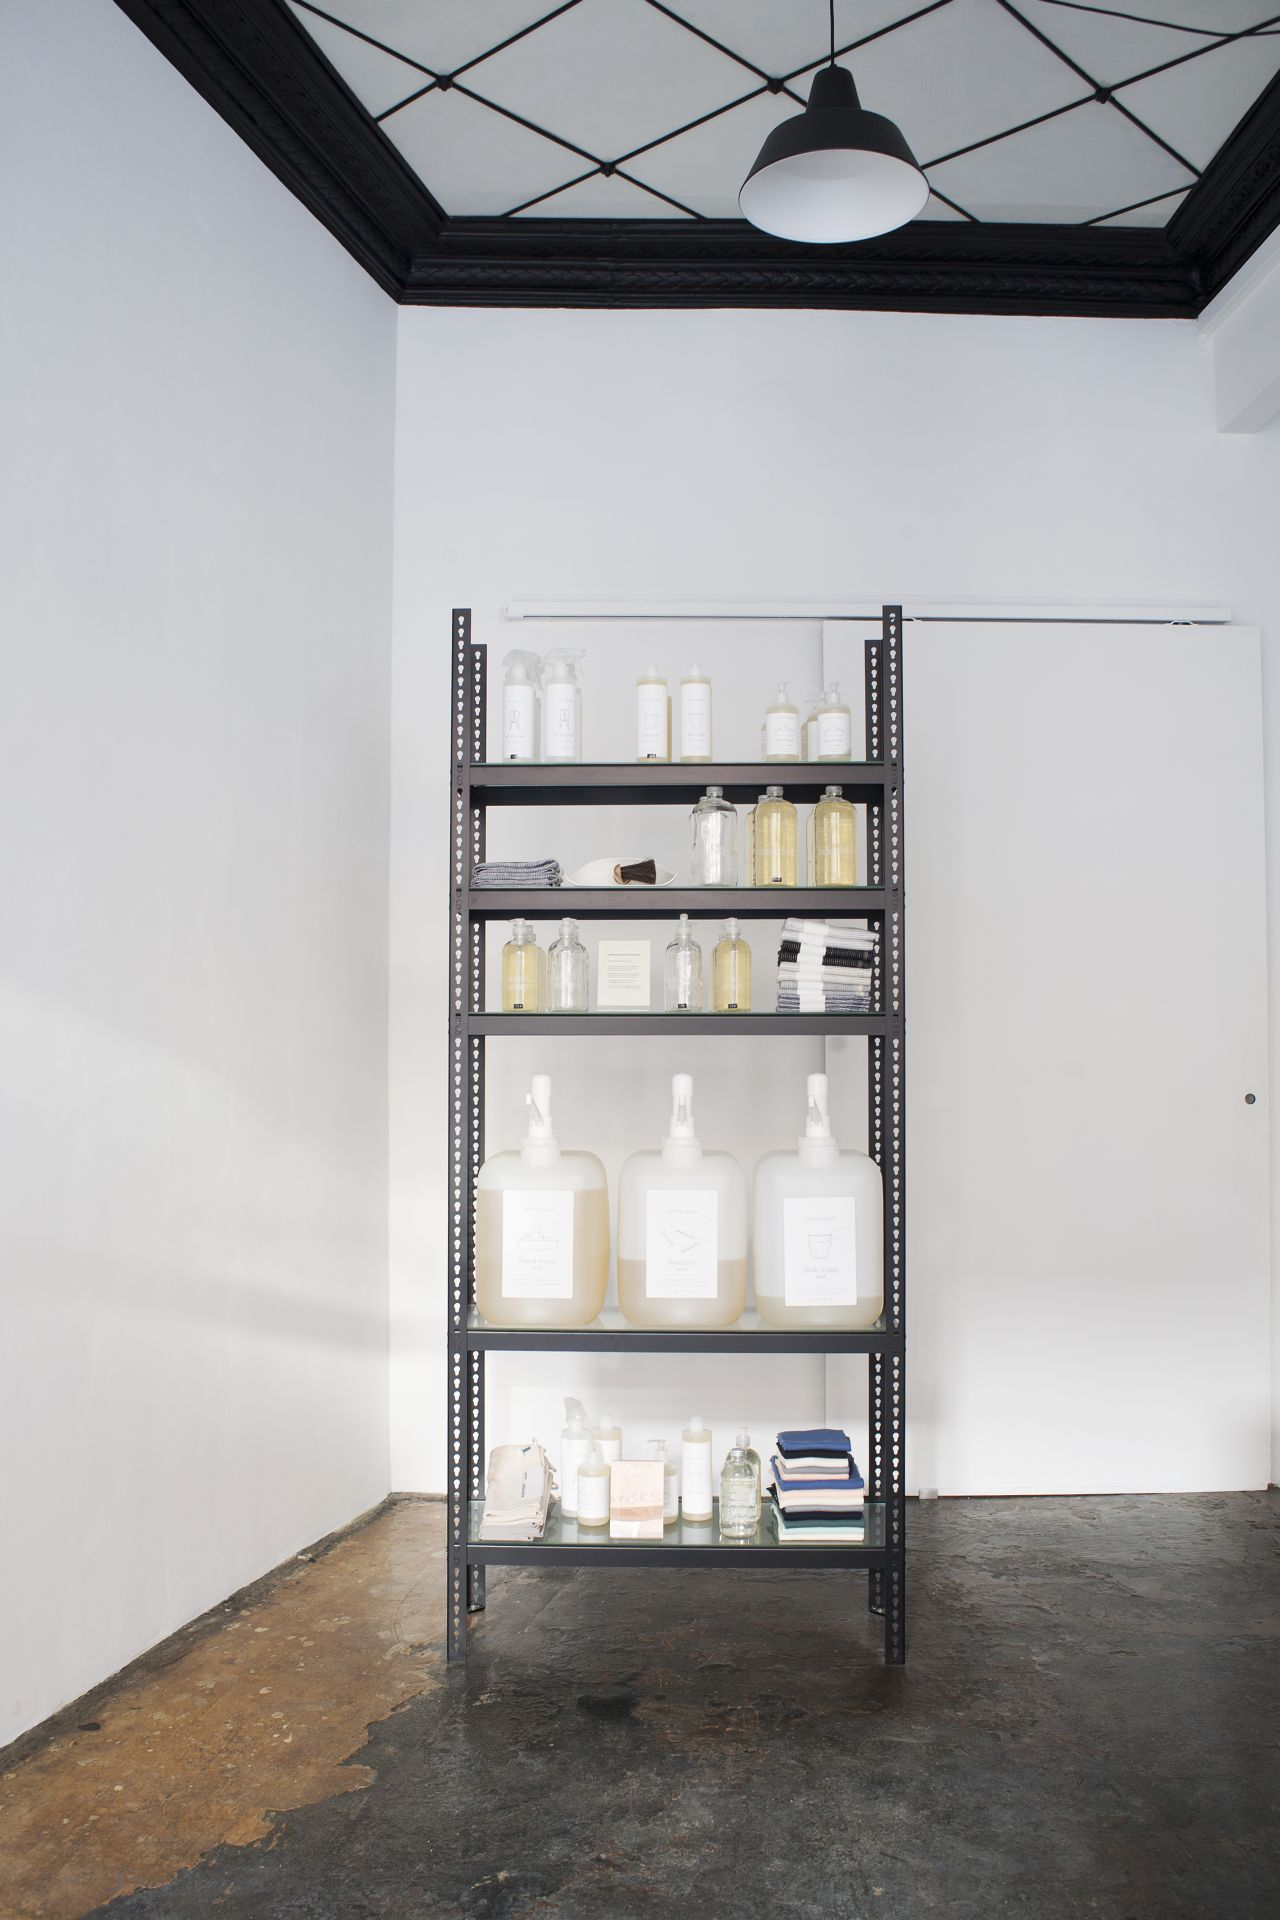 In the store, a shelf with home accessories.